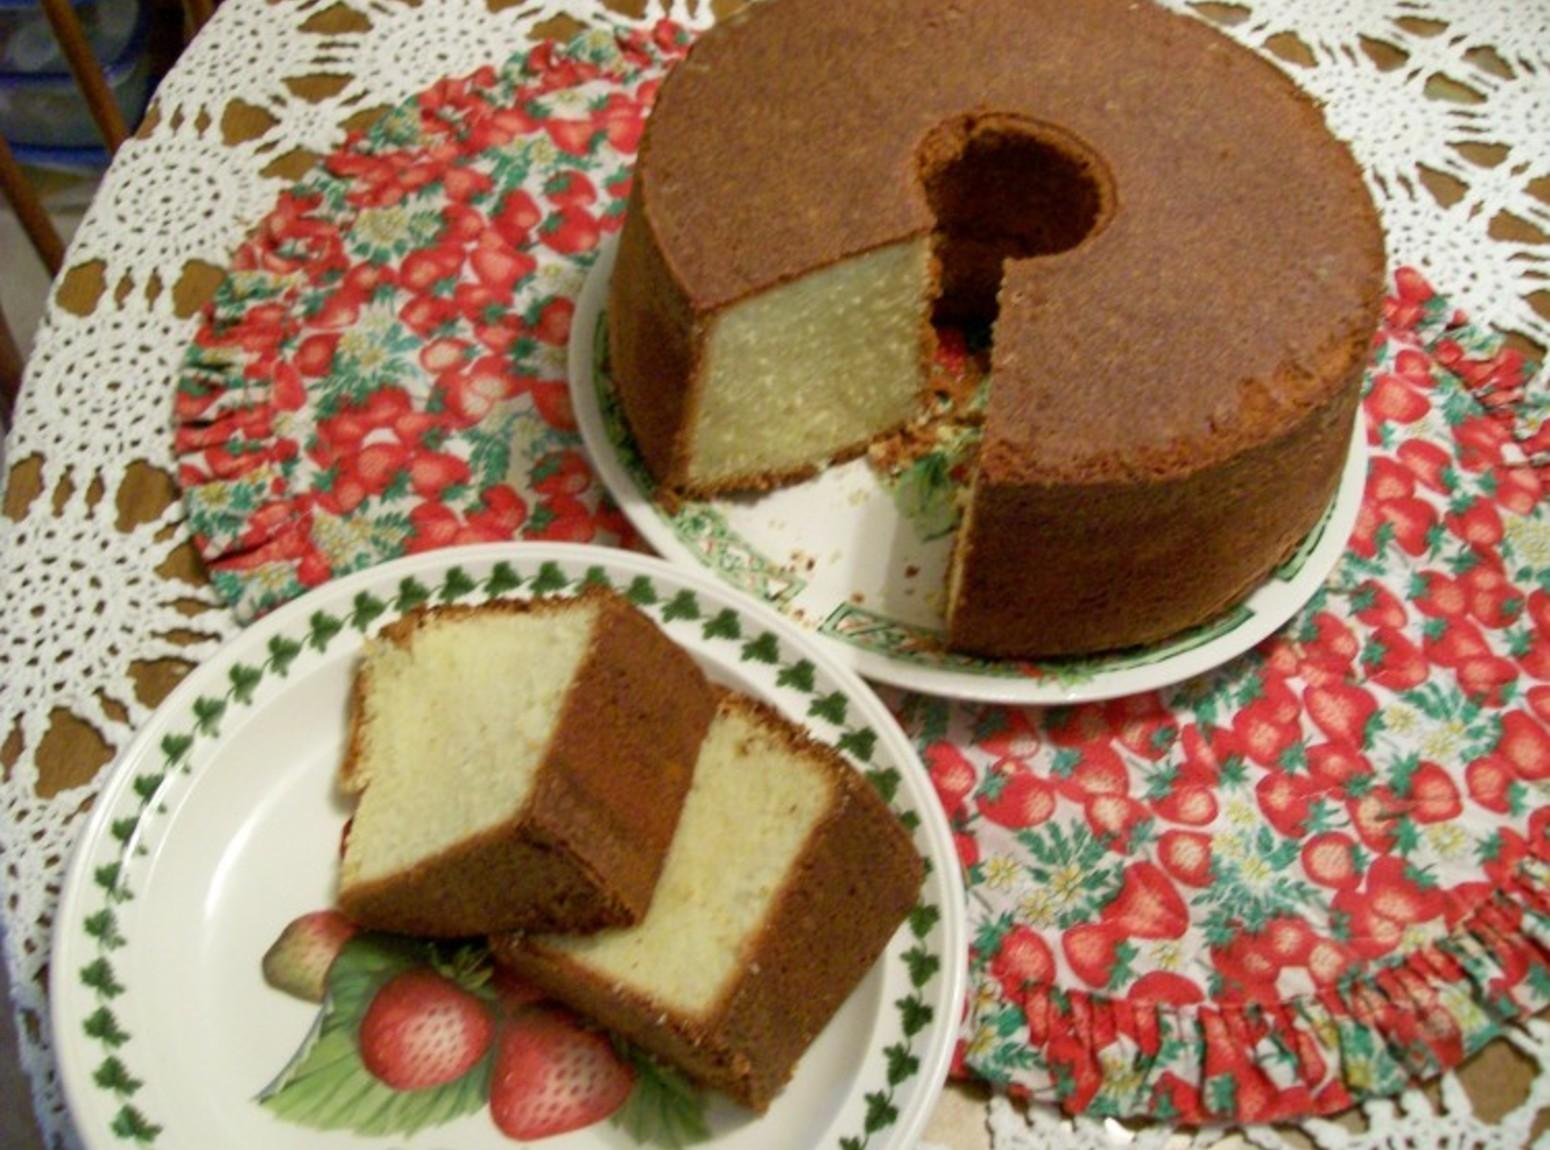 Elvis Presley's Favorite Whipping Cream Pound Cake By Freda Recipe